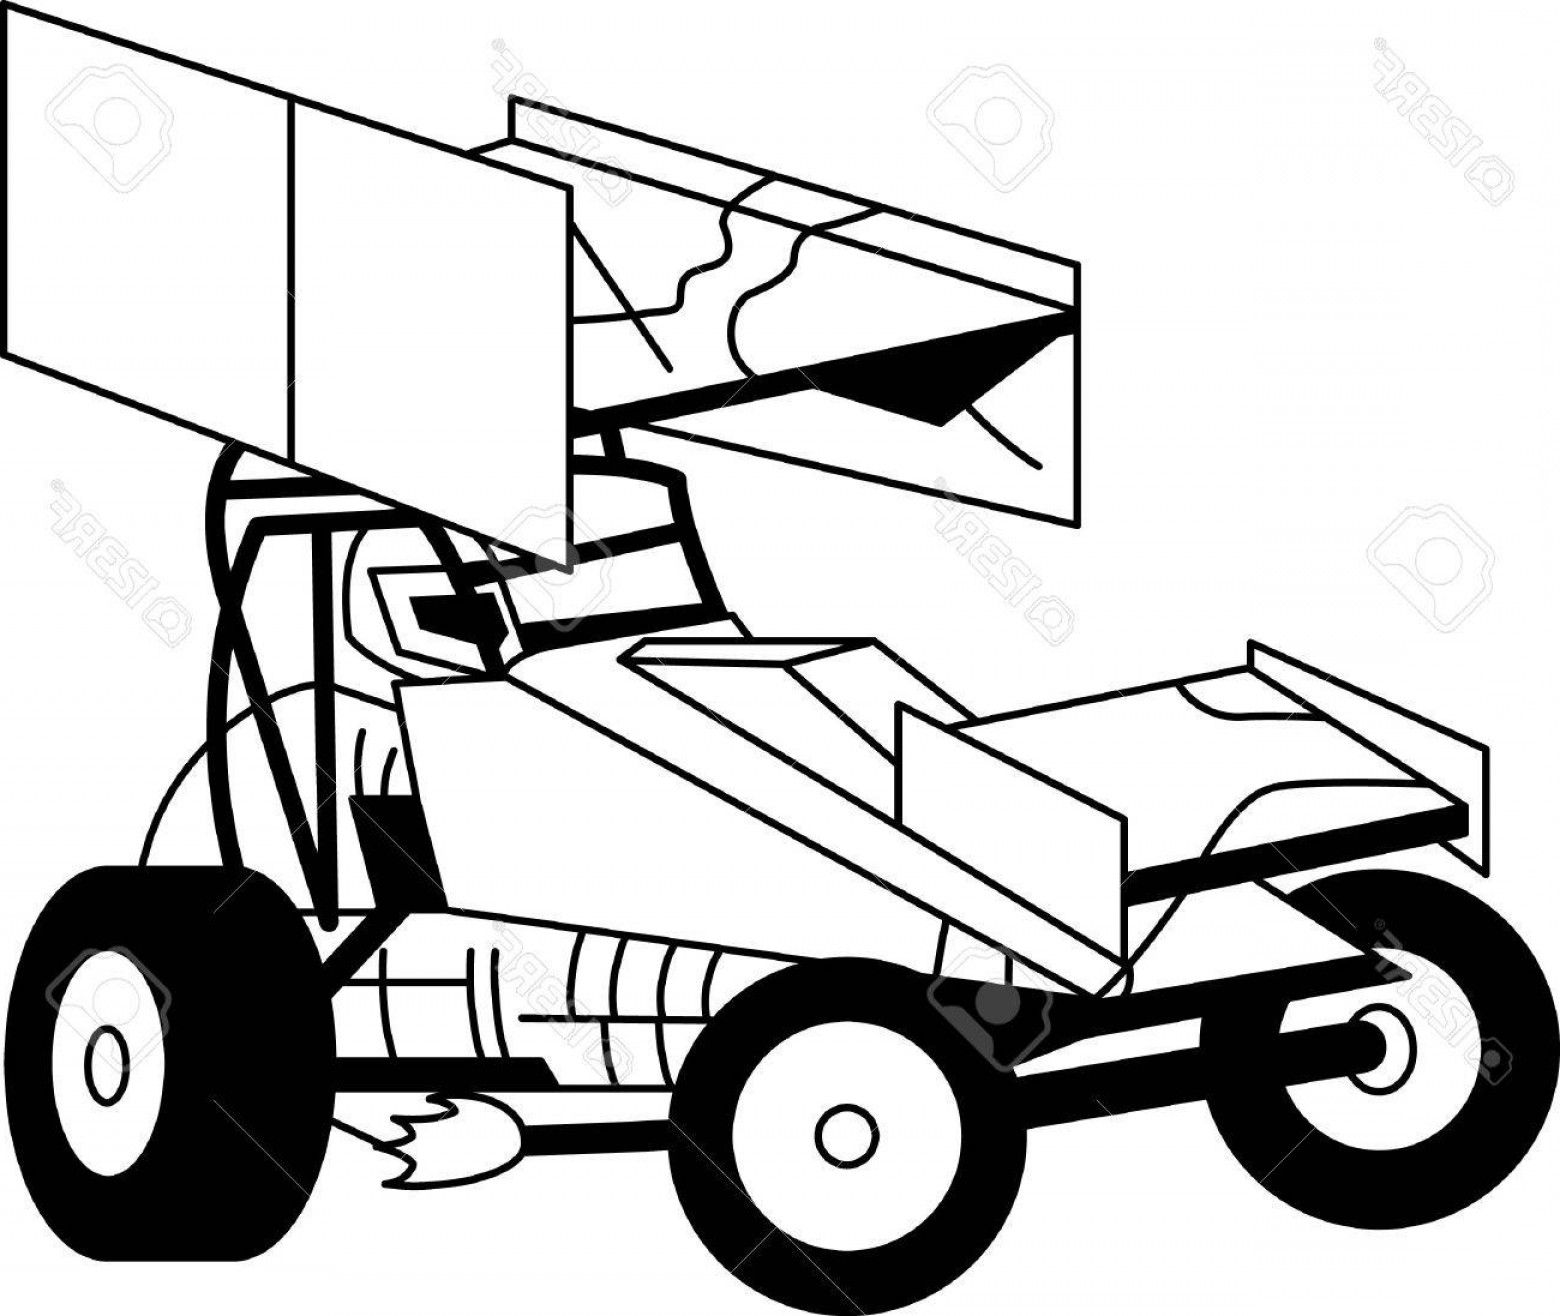 Sprint Car Vector: Photostock Vector This Sprint Car Outline Is Just Perfect For Vinyl Cutting Creates A Super Clean Eye Catching Design